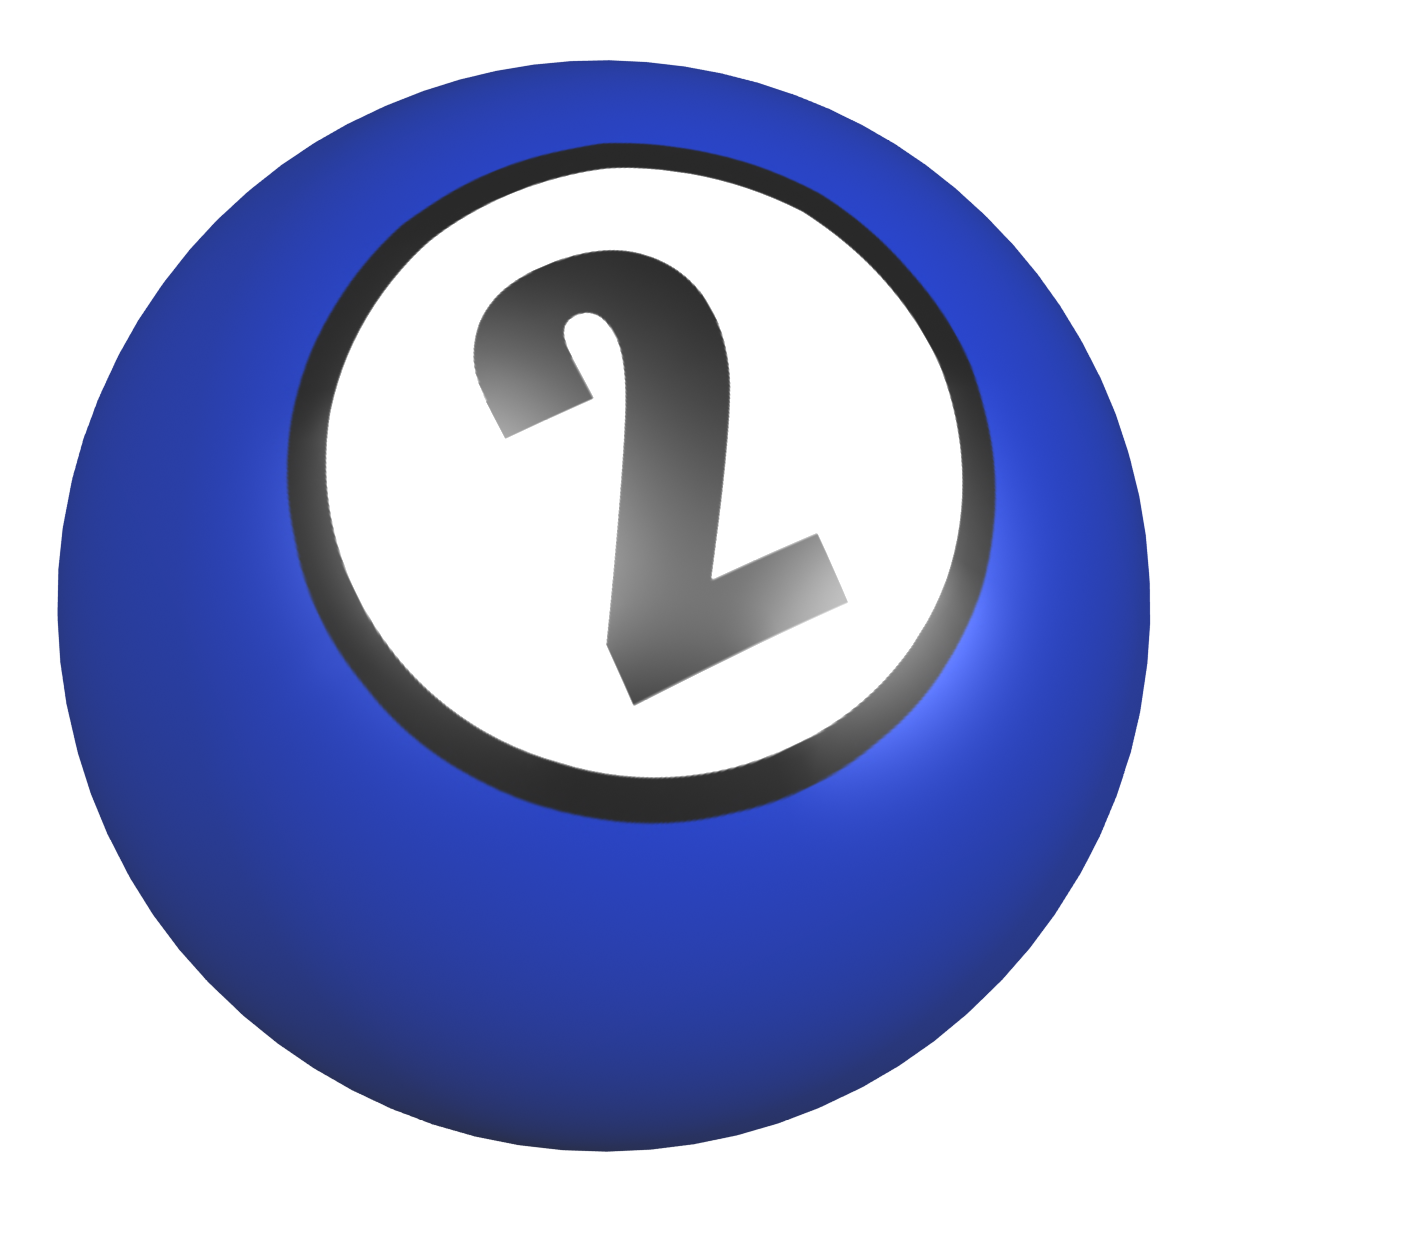 Number 2 Ball With Image From Clipart Fr-Number 2 Ball With Image From Clipart Free Clip Art Images-5